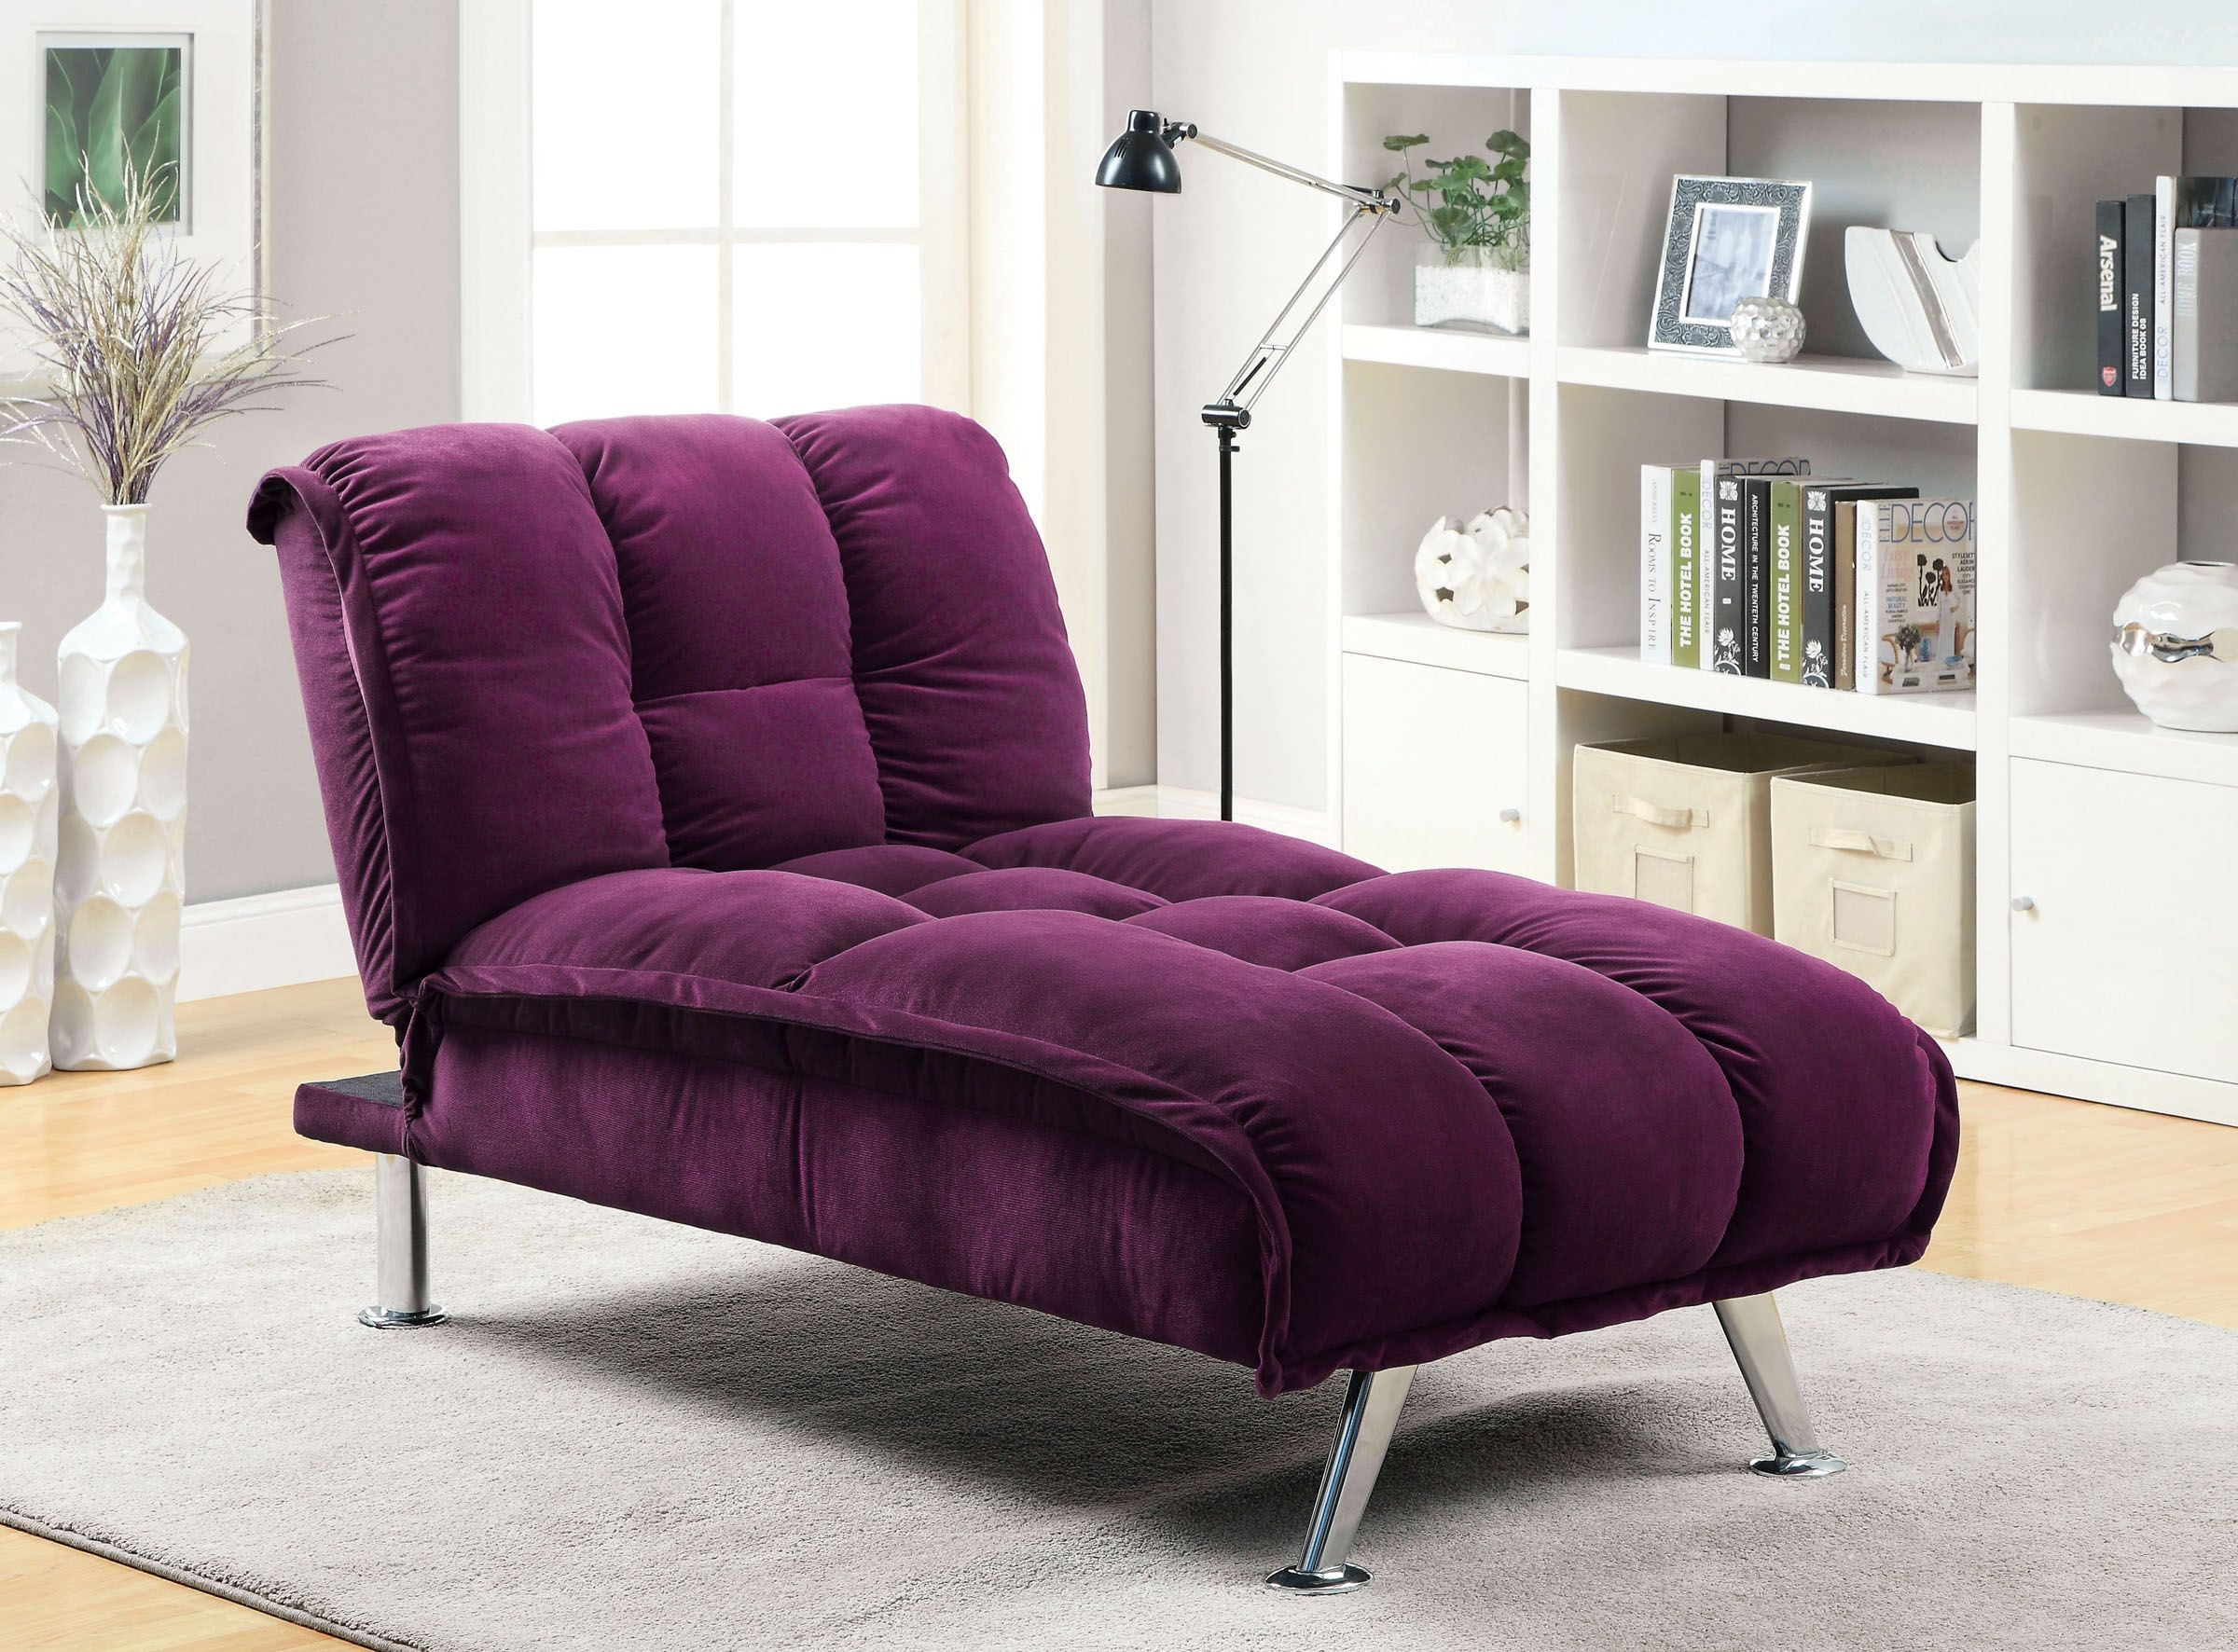 maybelle purple living room set cm2908pr furniture of america. Black Bedroom Furniture Sets. Home Design Ideas